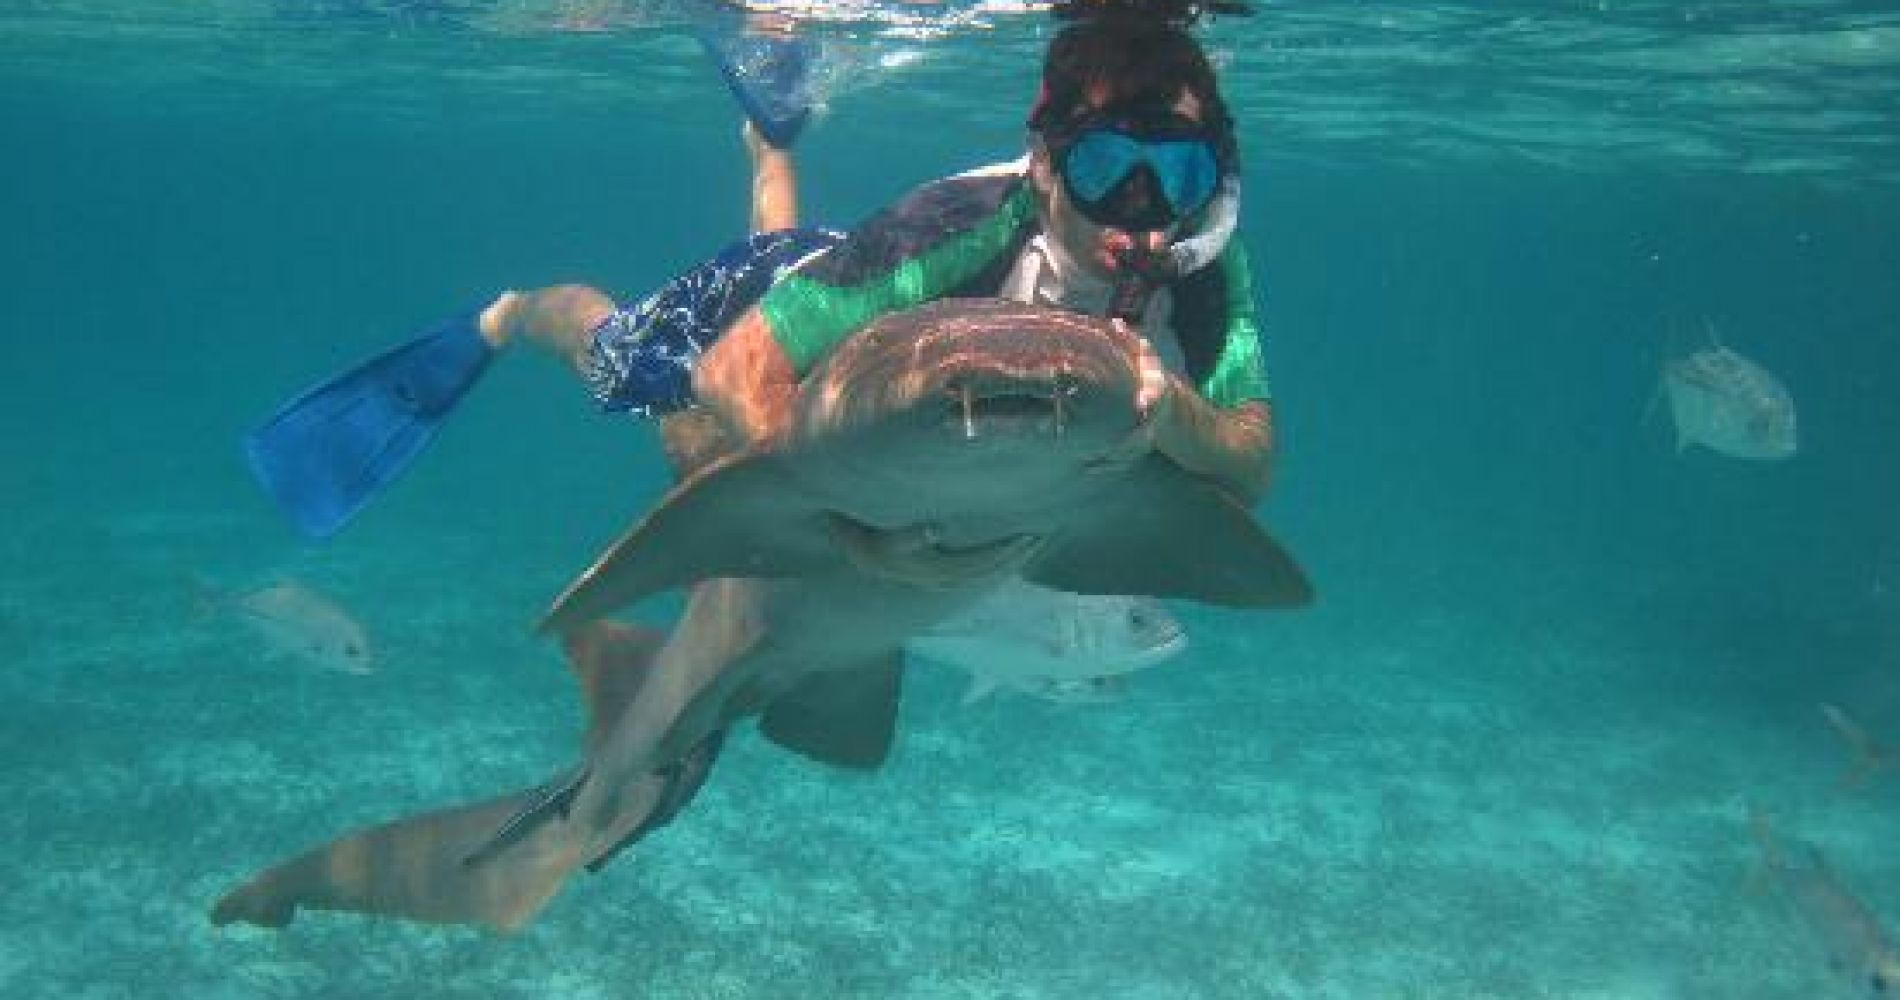 Swim with Real Sharks Eco-tour Indonesia Tinggly Experience Gifts